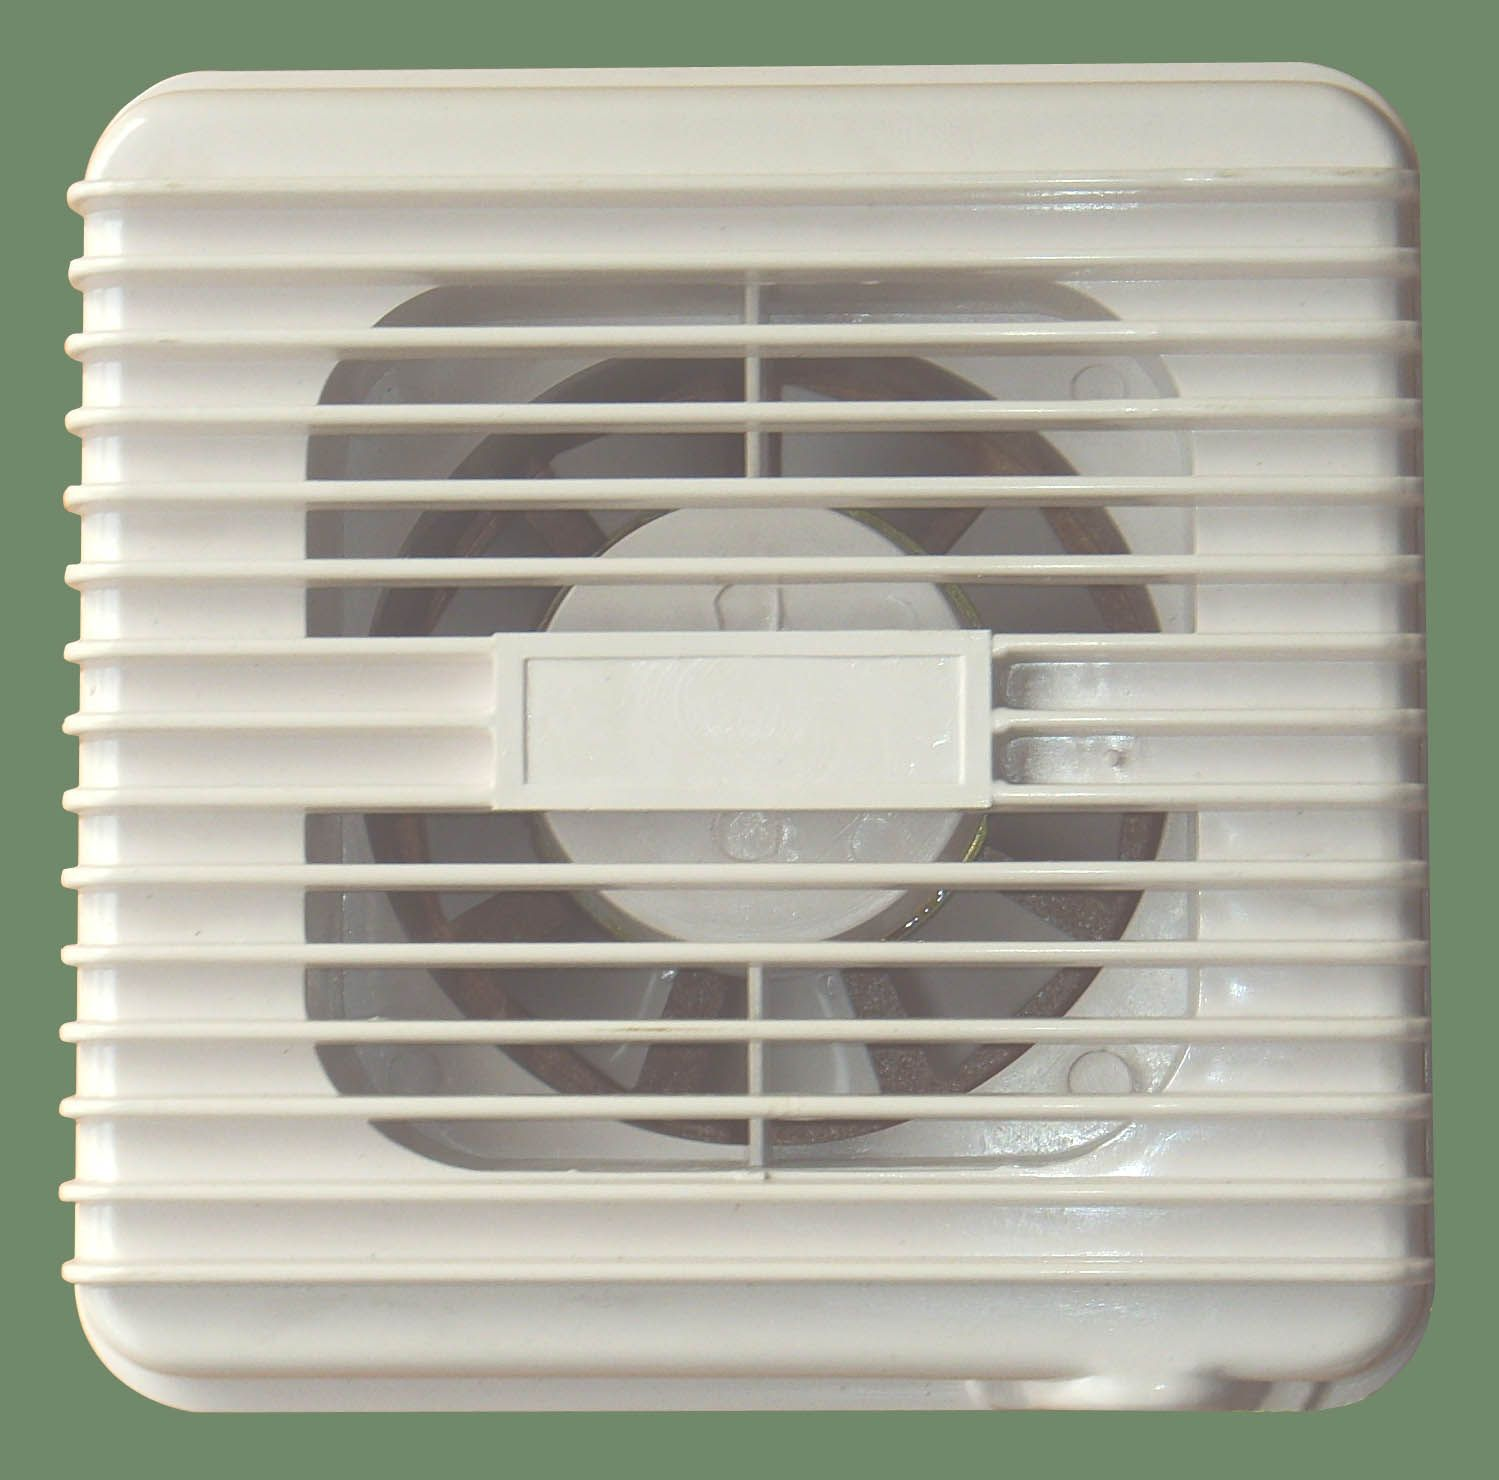 Bathroom Window Exhaust Fan Home Depot